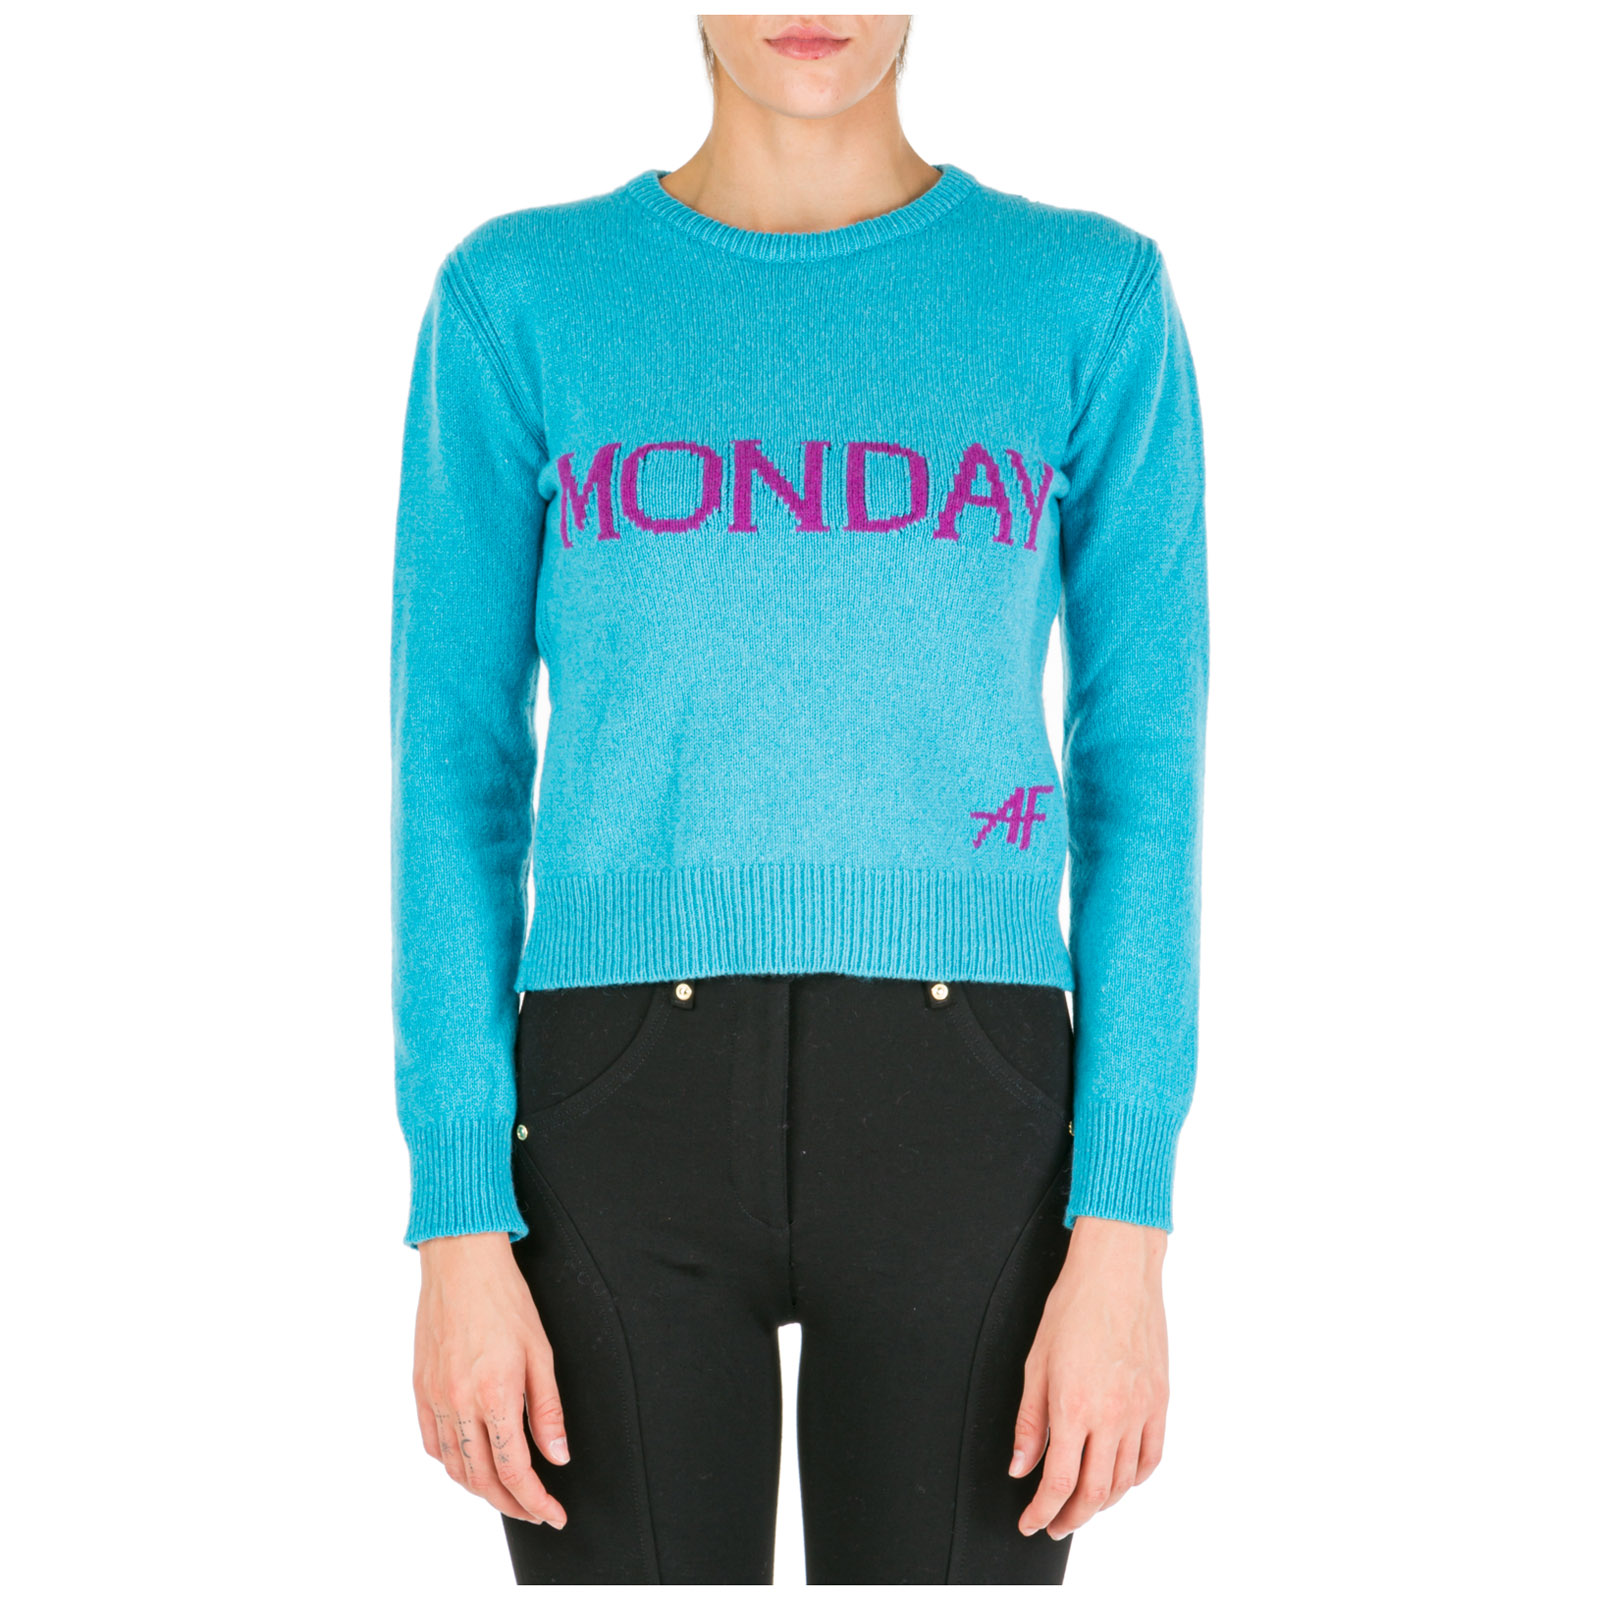 Women's jumper sweater crew neck round rainbow week monday